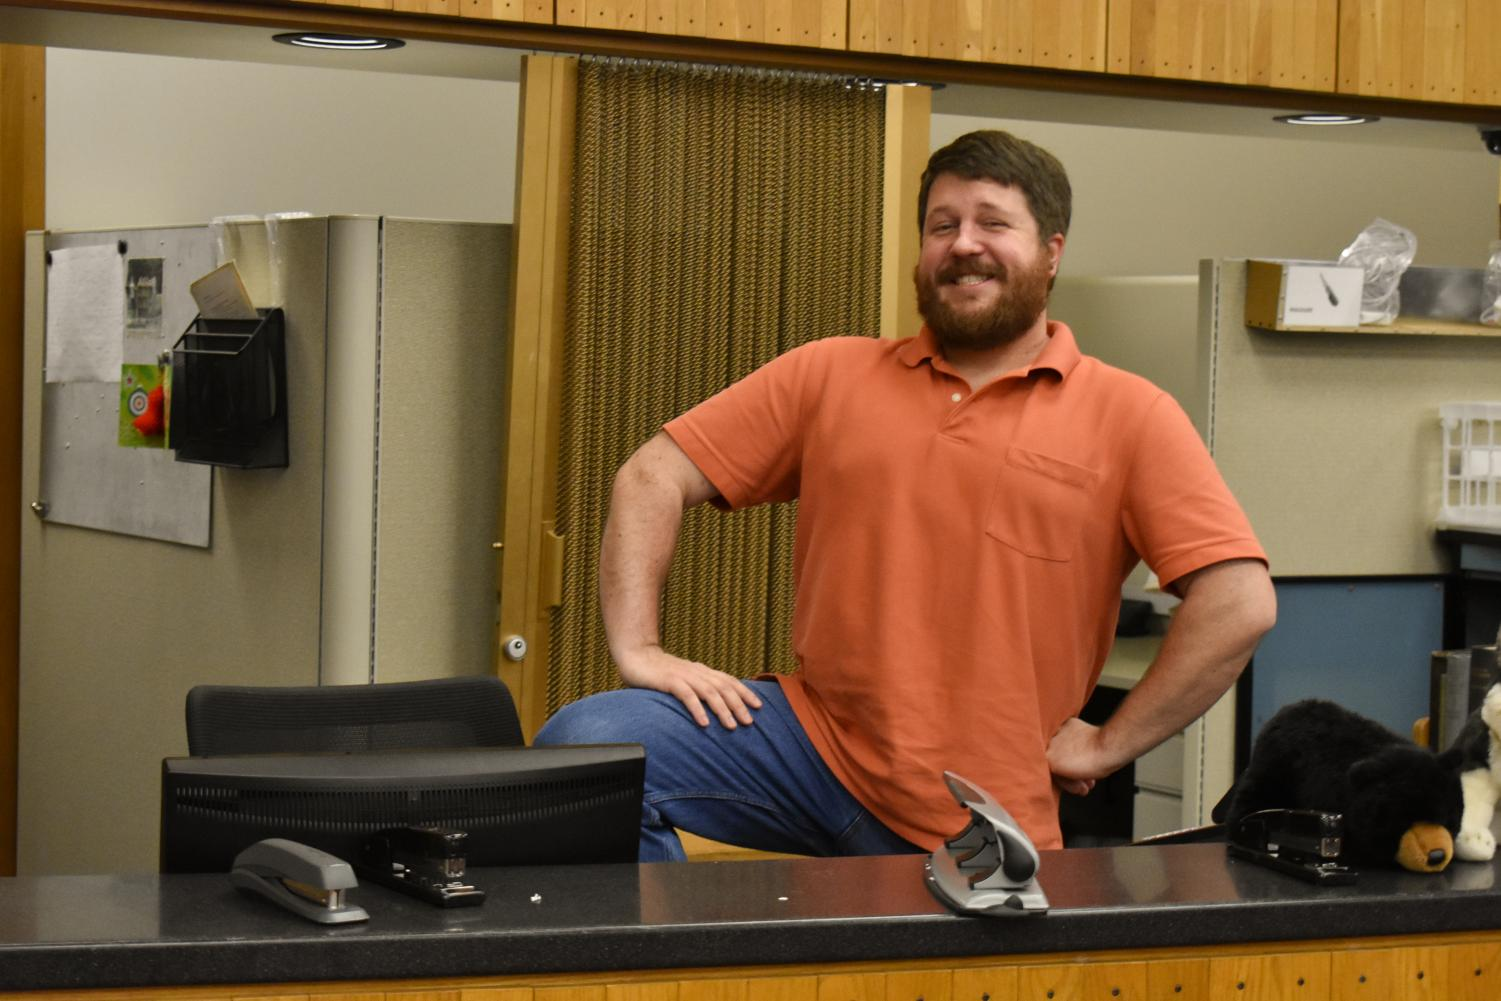 Joseph B. Maiville, OC '07, poses behind the circulation desk in Mudd library.